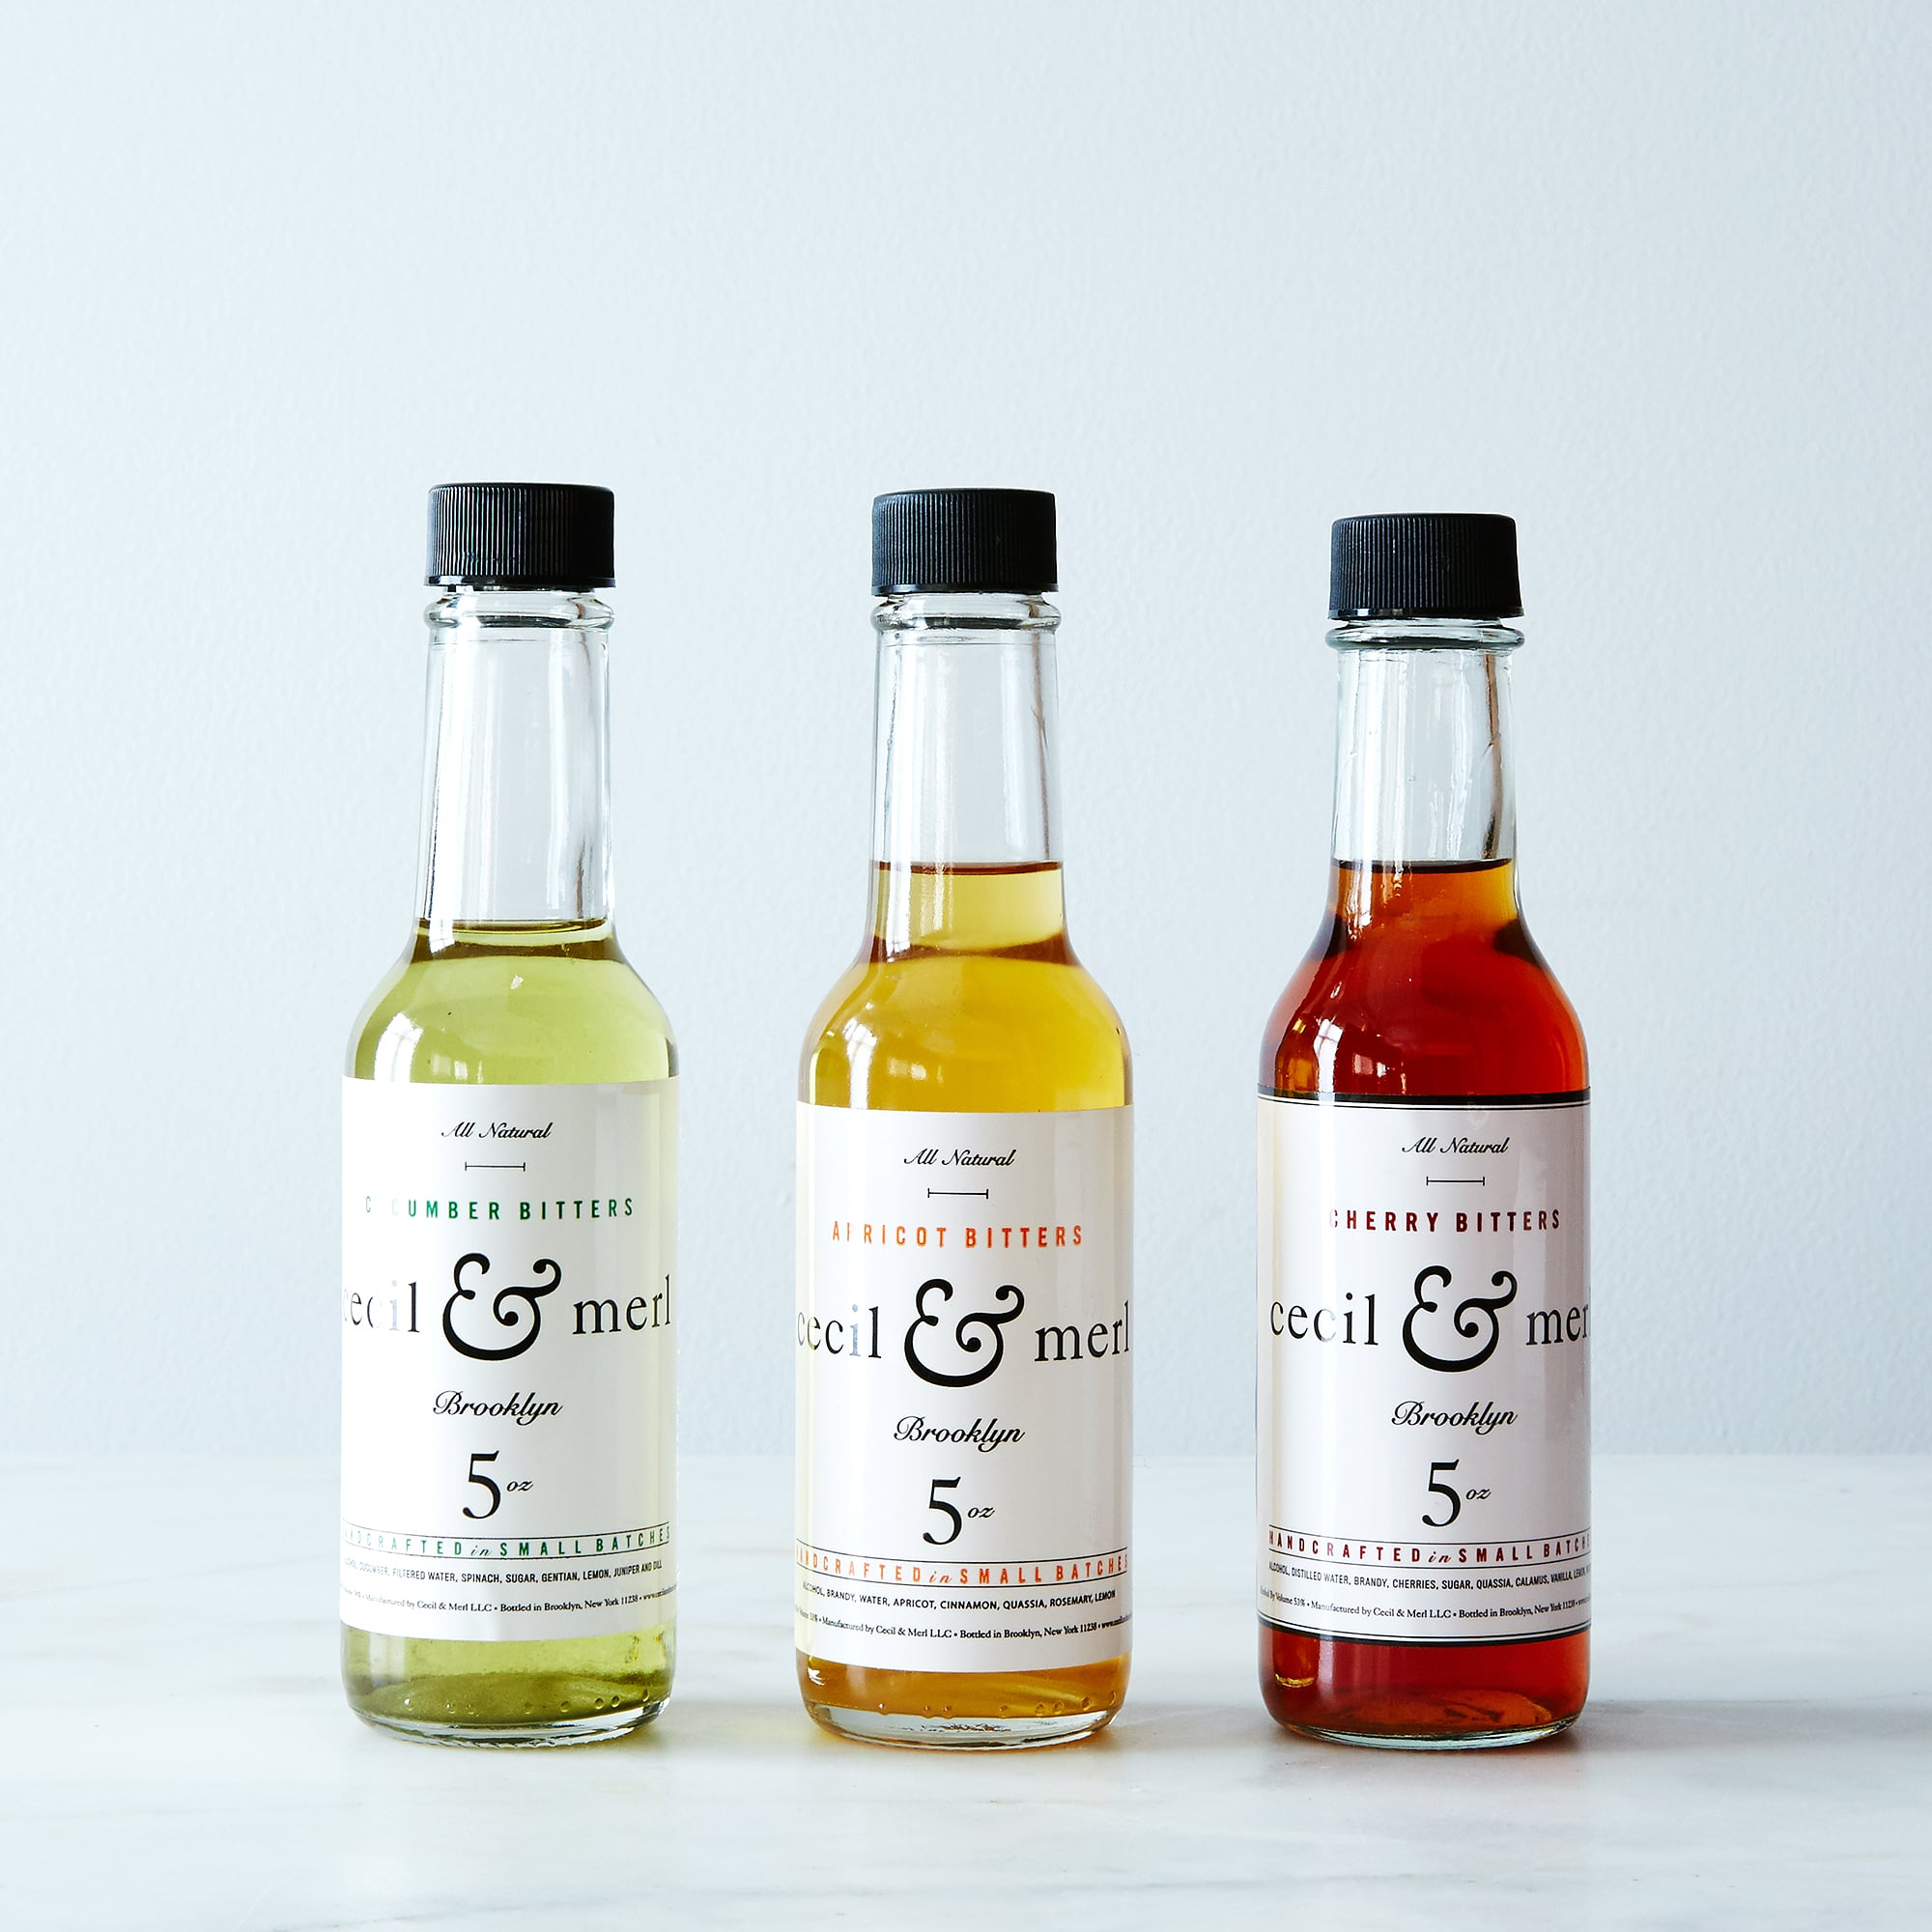 Cecil & Merl Fruit Bitters